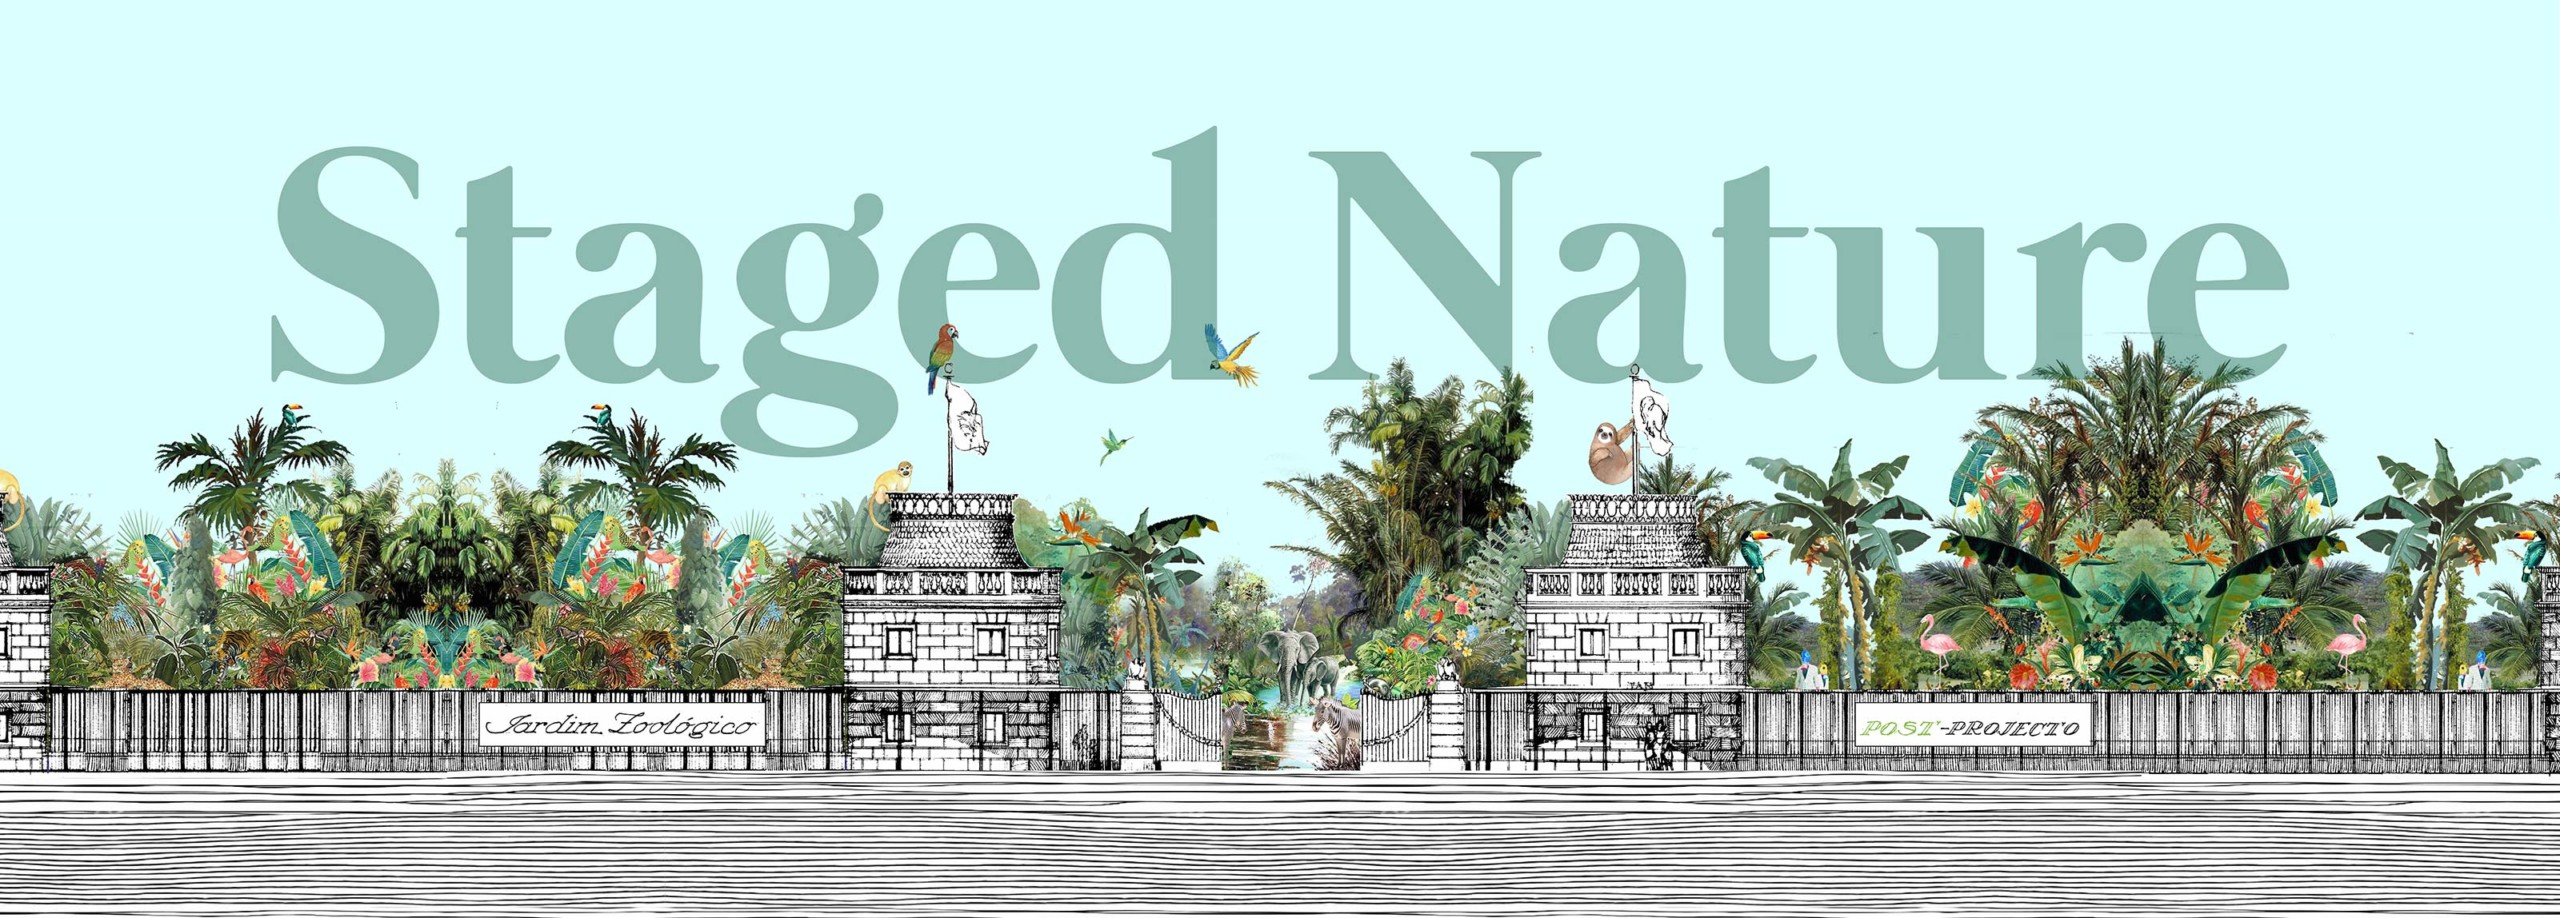 StagedNature